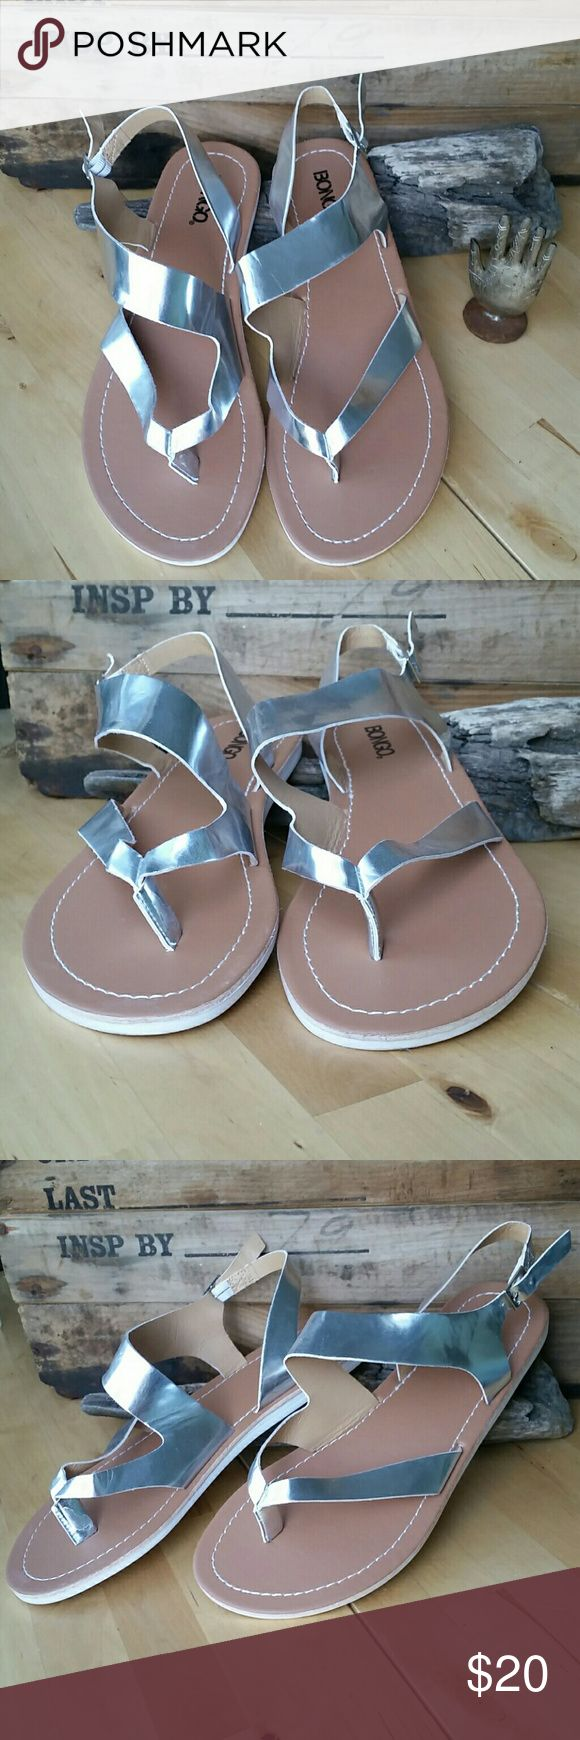 NWOT BONGO Mirrored Silver Strappy Sandals New, never worn, without tags!   These BONGO vegan leather, silver mirrored strappy sandals will carry you through spring and summer with ease. Super flexible for extra comfort! Possibly rare, as I could not find these anywhere else online.  True to size. Style: BECCA BONGO Shoes Sandals